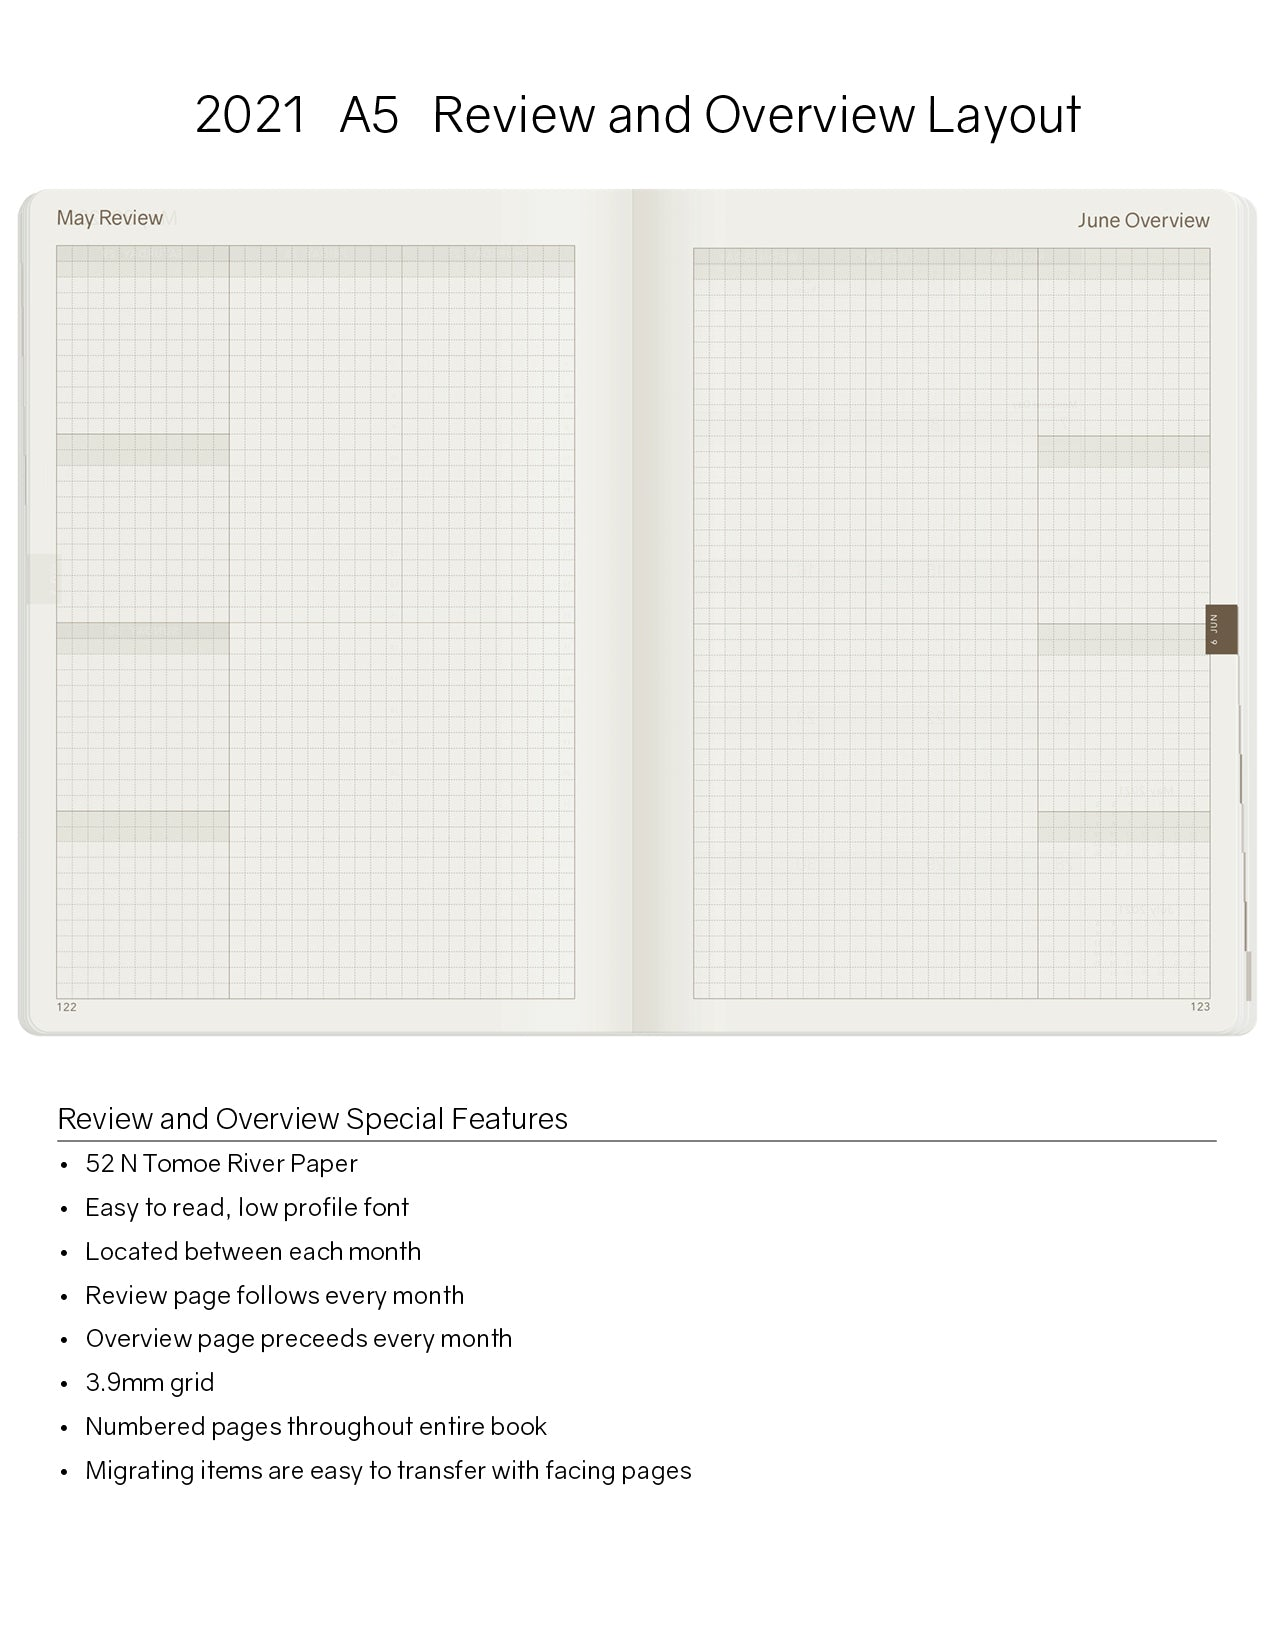 A5 2021 Tomoe River Paper Planner 52gsm by Wonderland 222 Hybrid Bullet Journal Bujo Monthly Review and Monthly Overview Pages